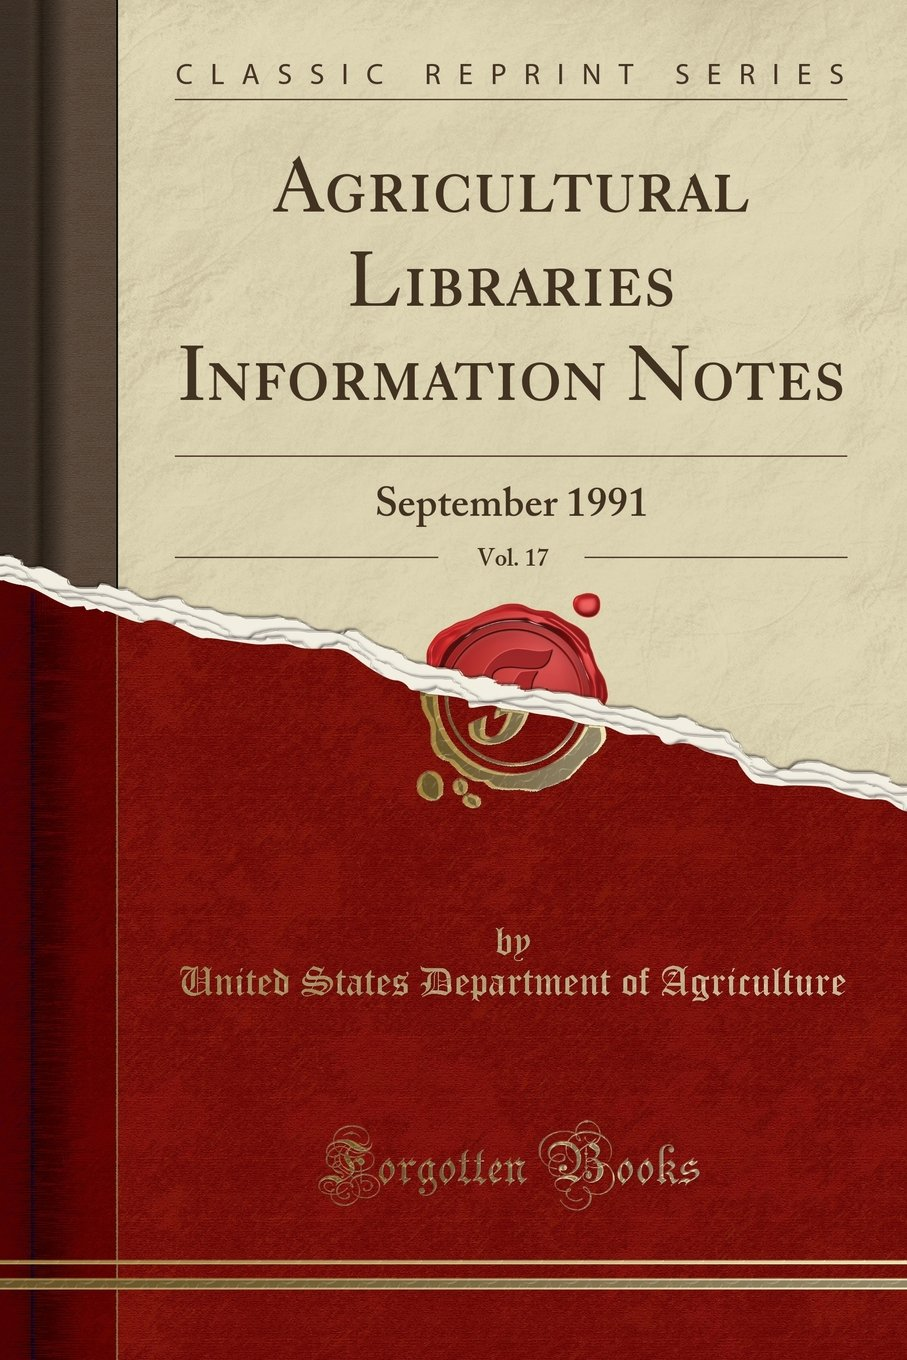 Agricultural Libraries Information Notes, Vol. 17: September 1991 (Classic Reprint) ebook